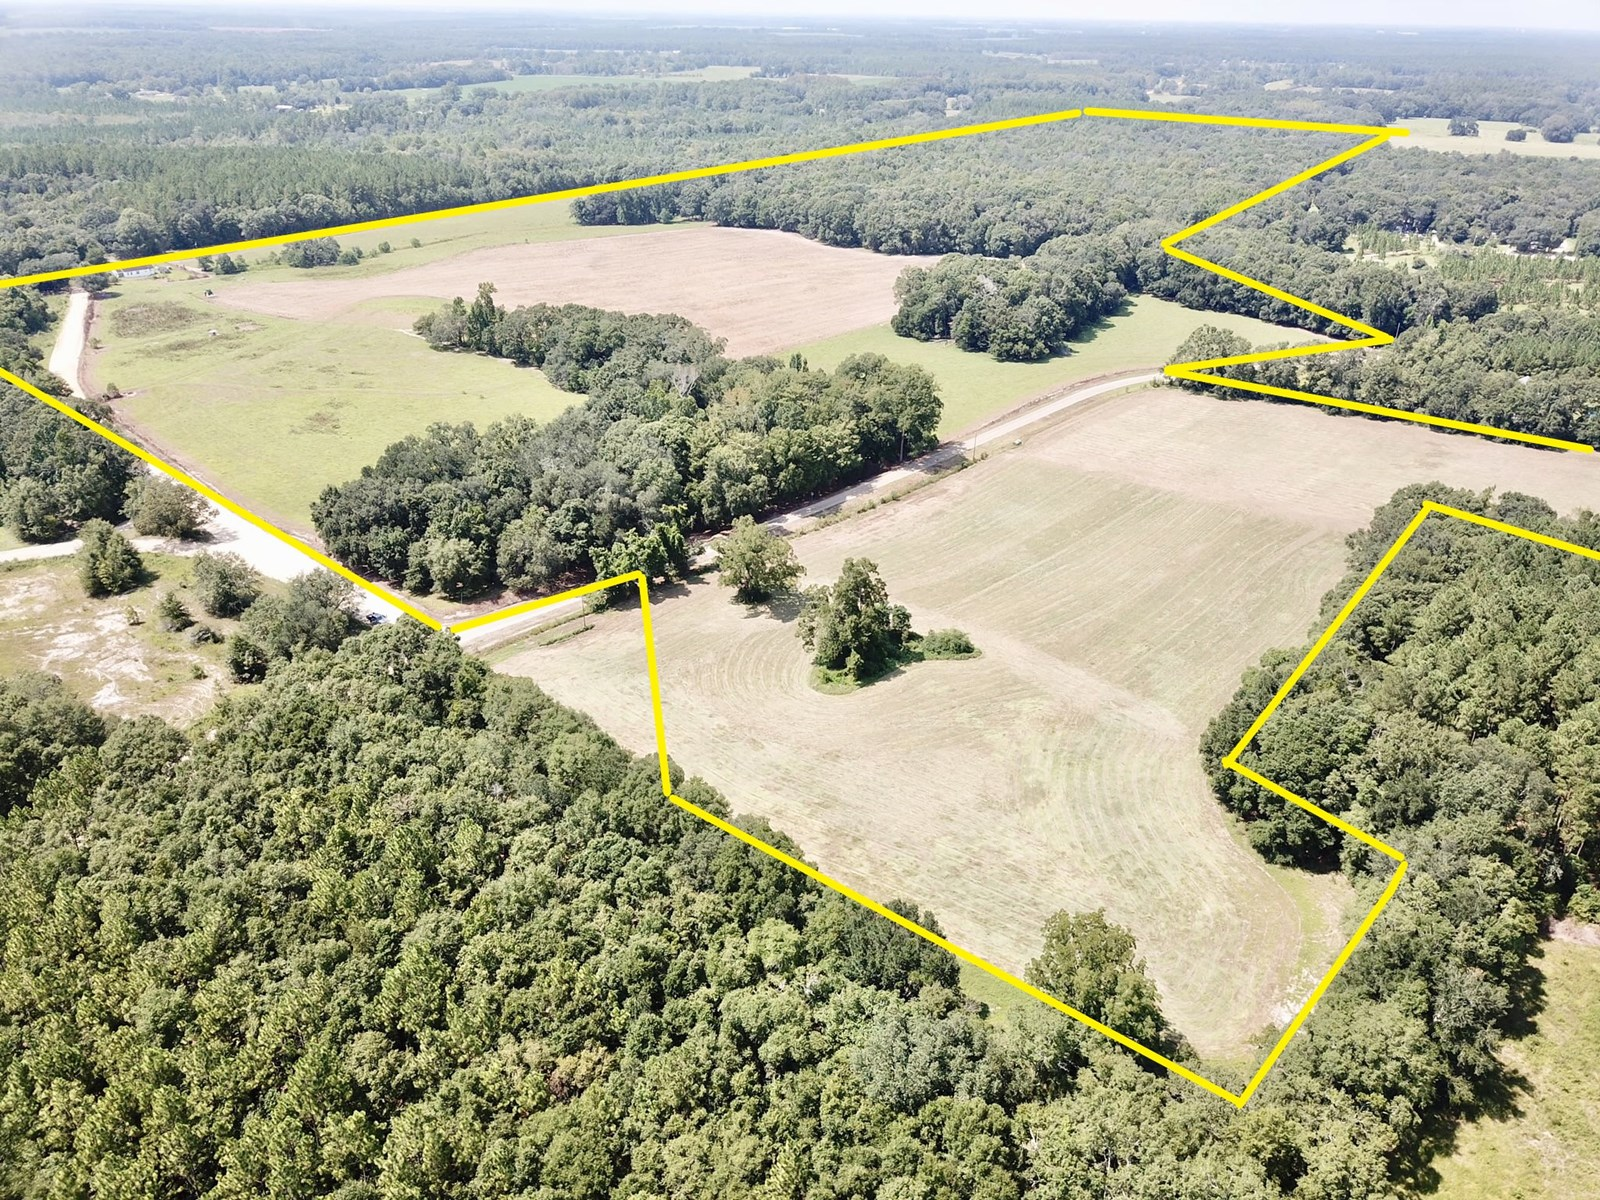 132 ACRE FARM FOR SALE IN BLACK, ALABAMA W AN OLD FARM HOUSE